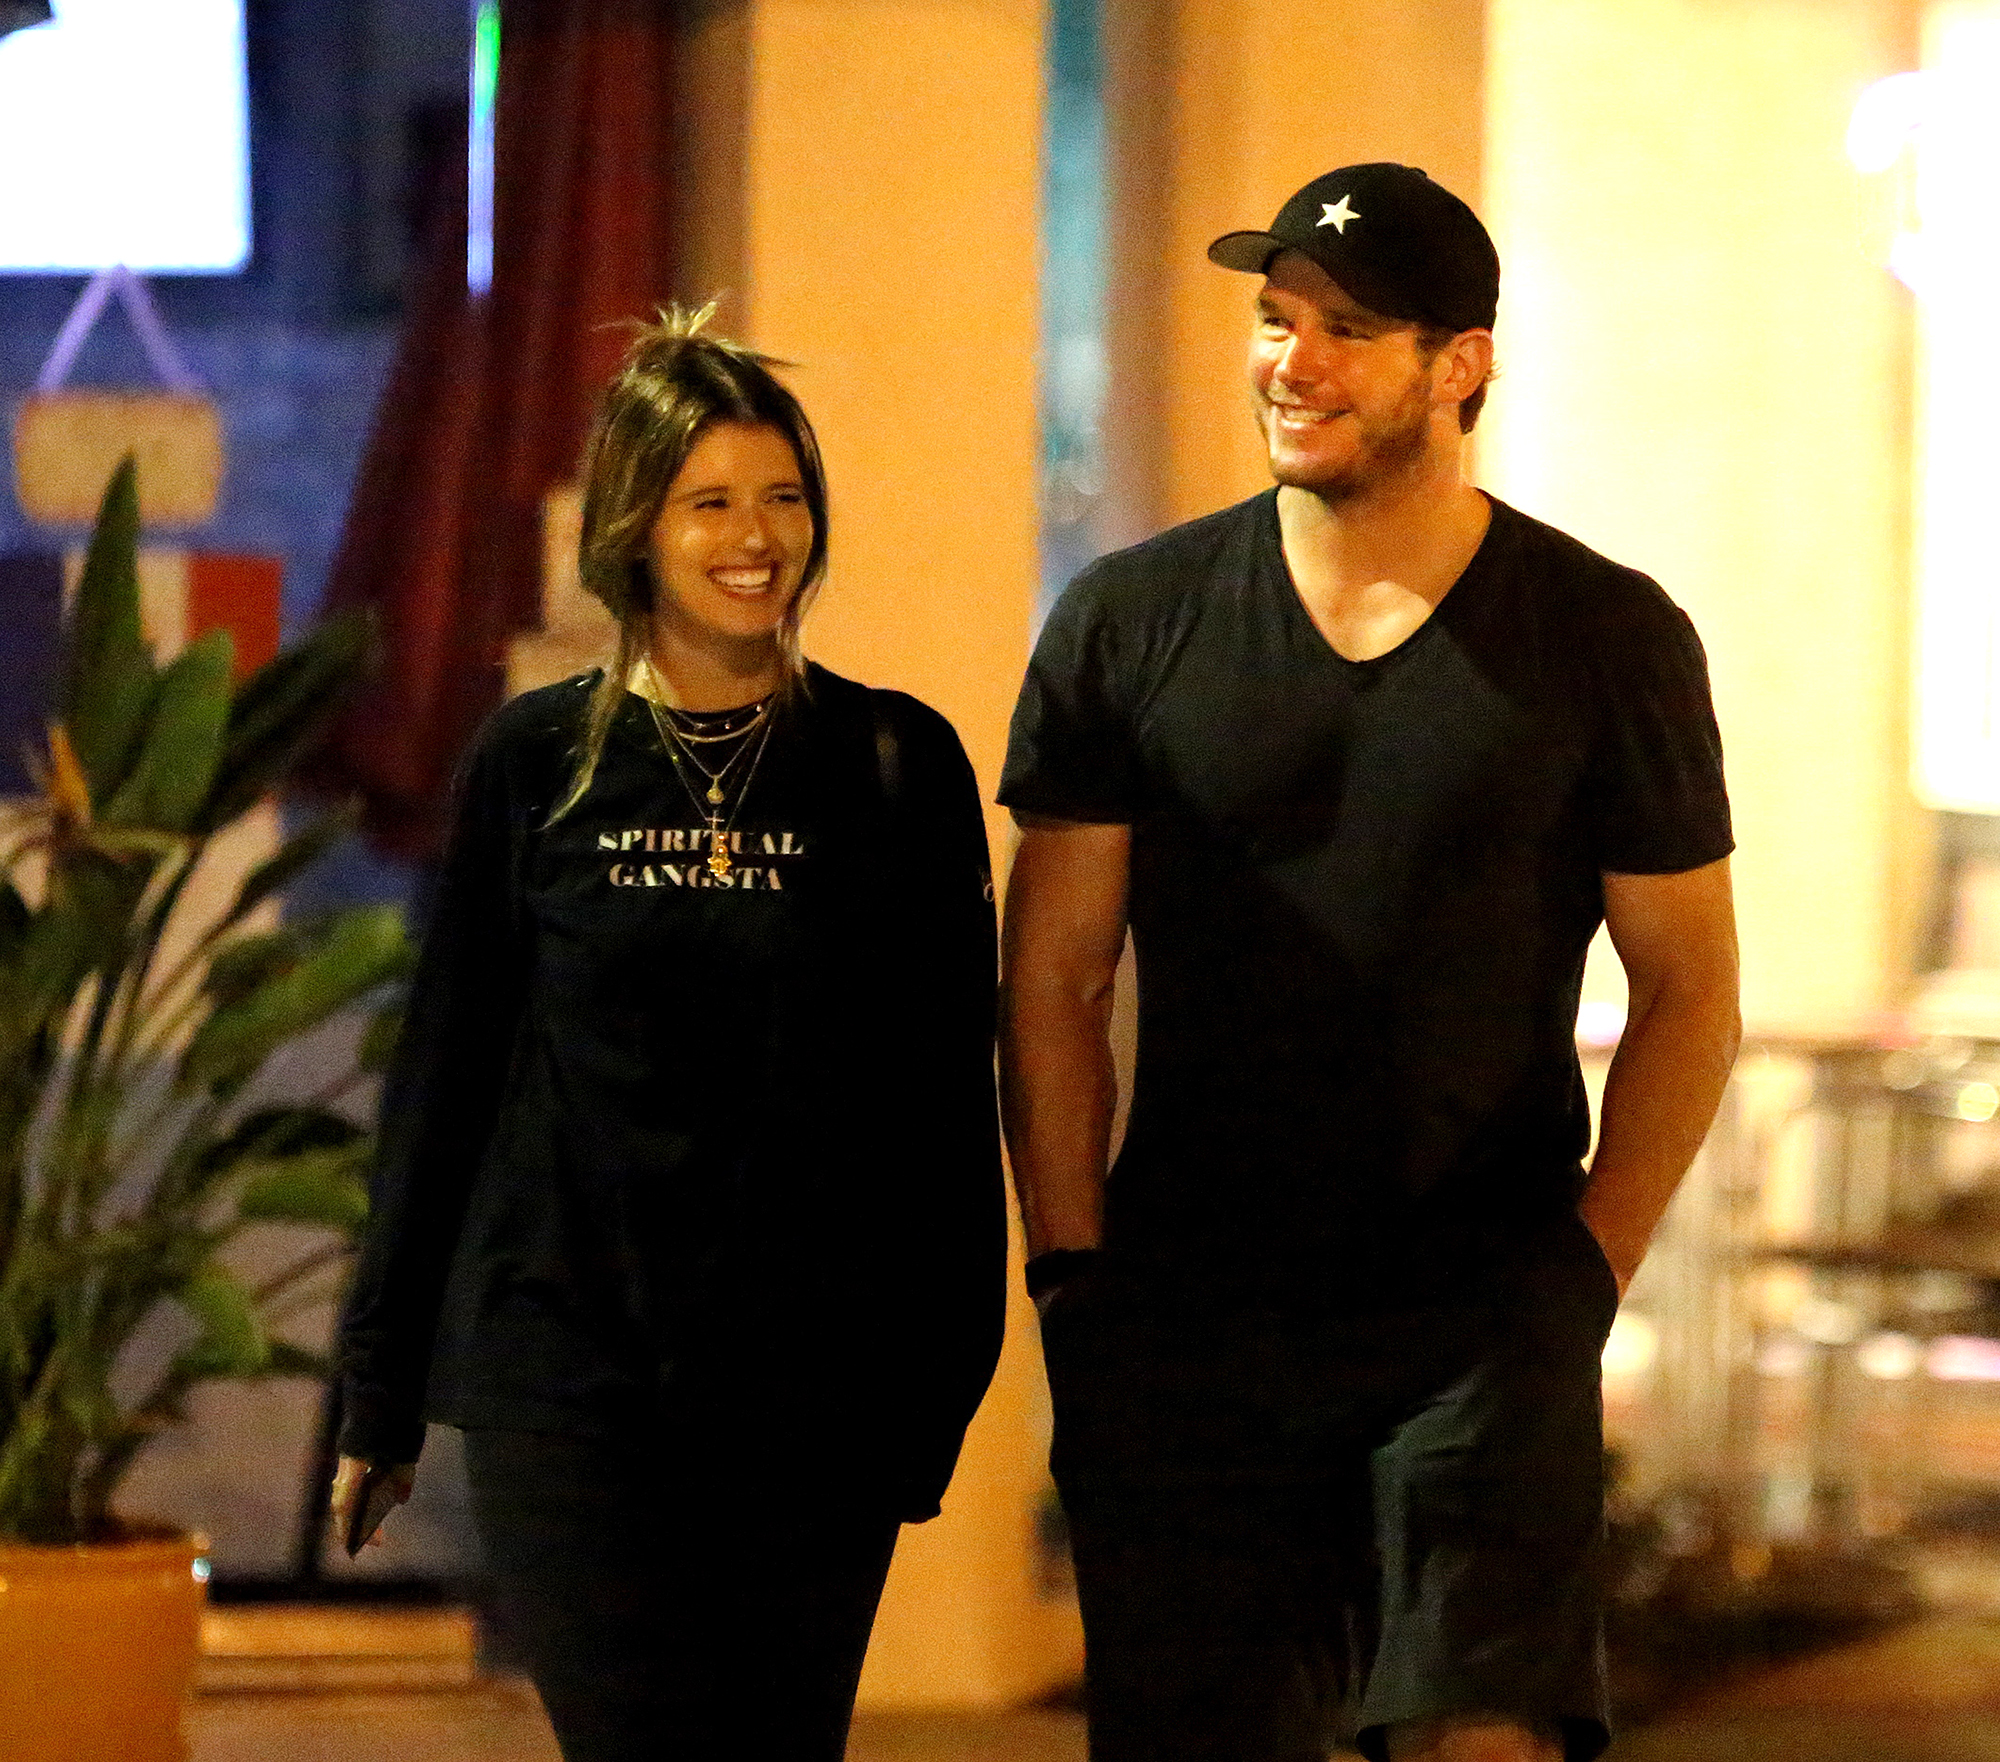 Chris Pratt and Katherine Schwarzenegger: A Timeline of Their Relationship - Christ Pratt laughs with his new flame Katherine Schwarzenegger after dinner. 29 Aug 2018 Pictured: Chris Pratt and Katherine Schwarzenegger.